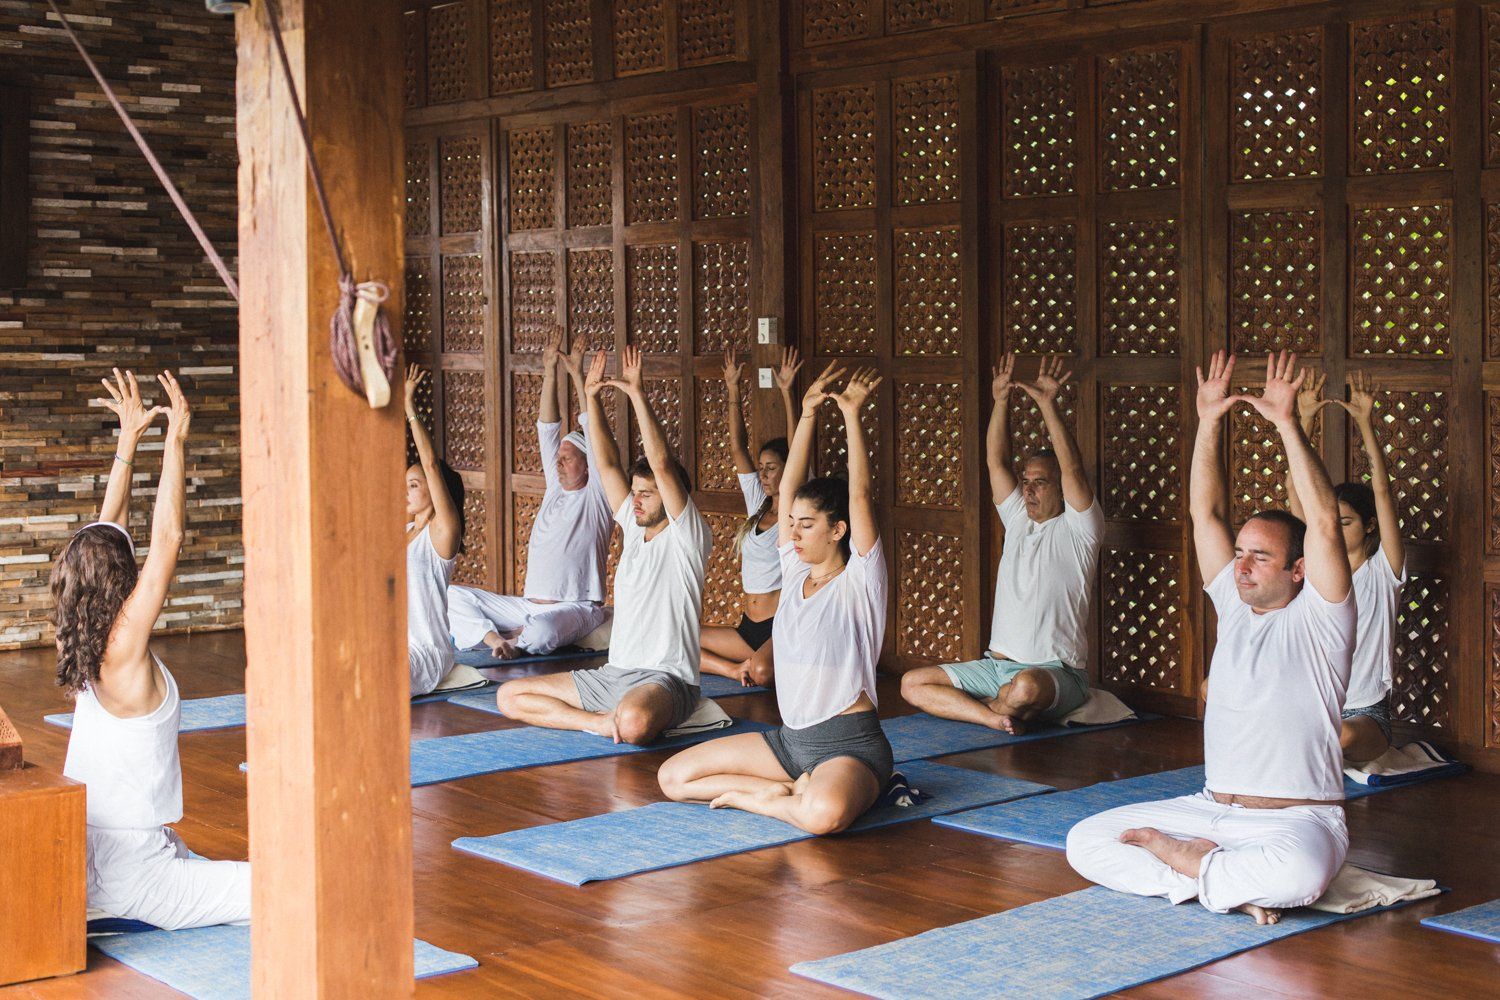 Yoga classes at the Place